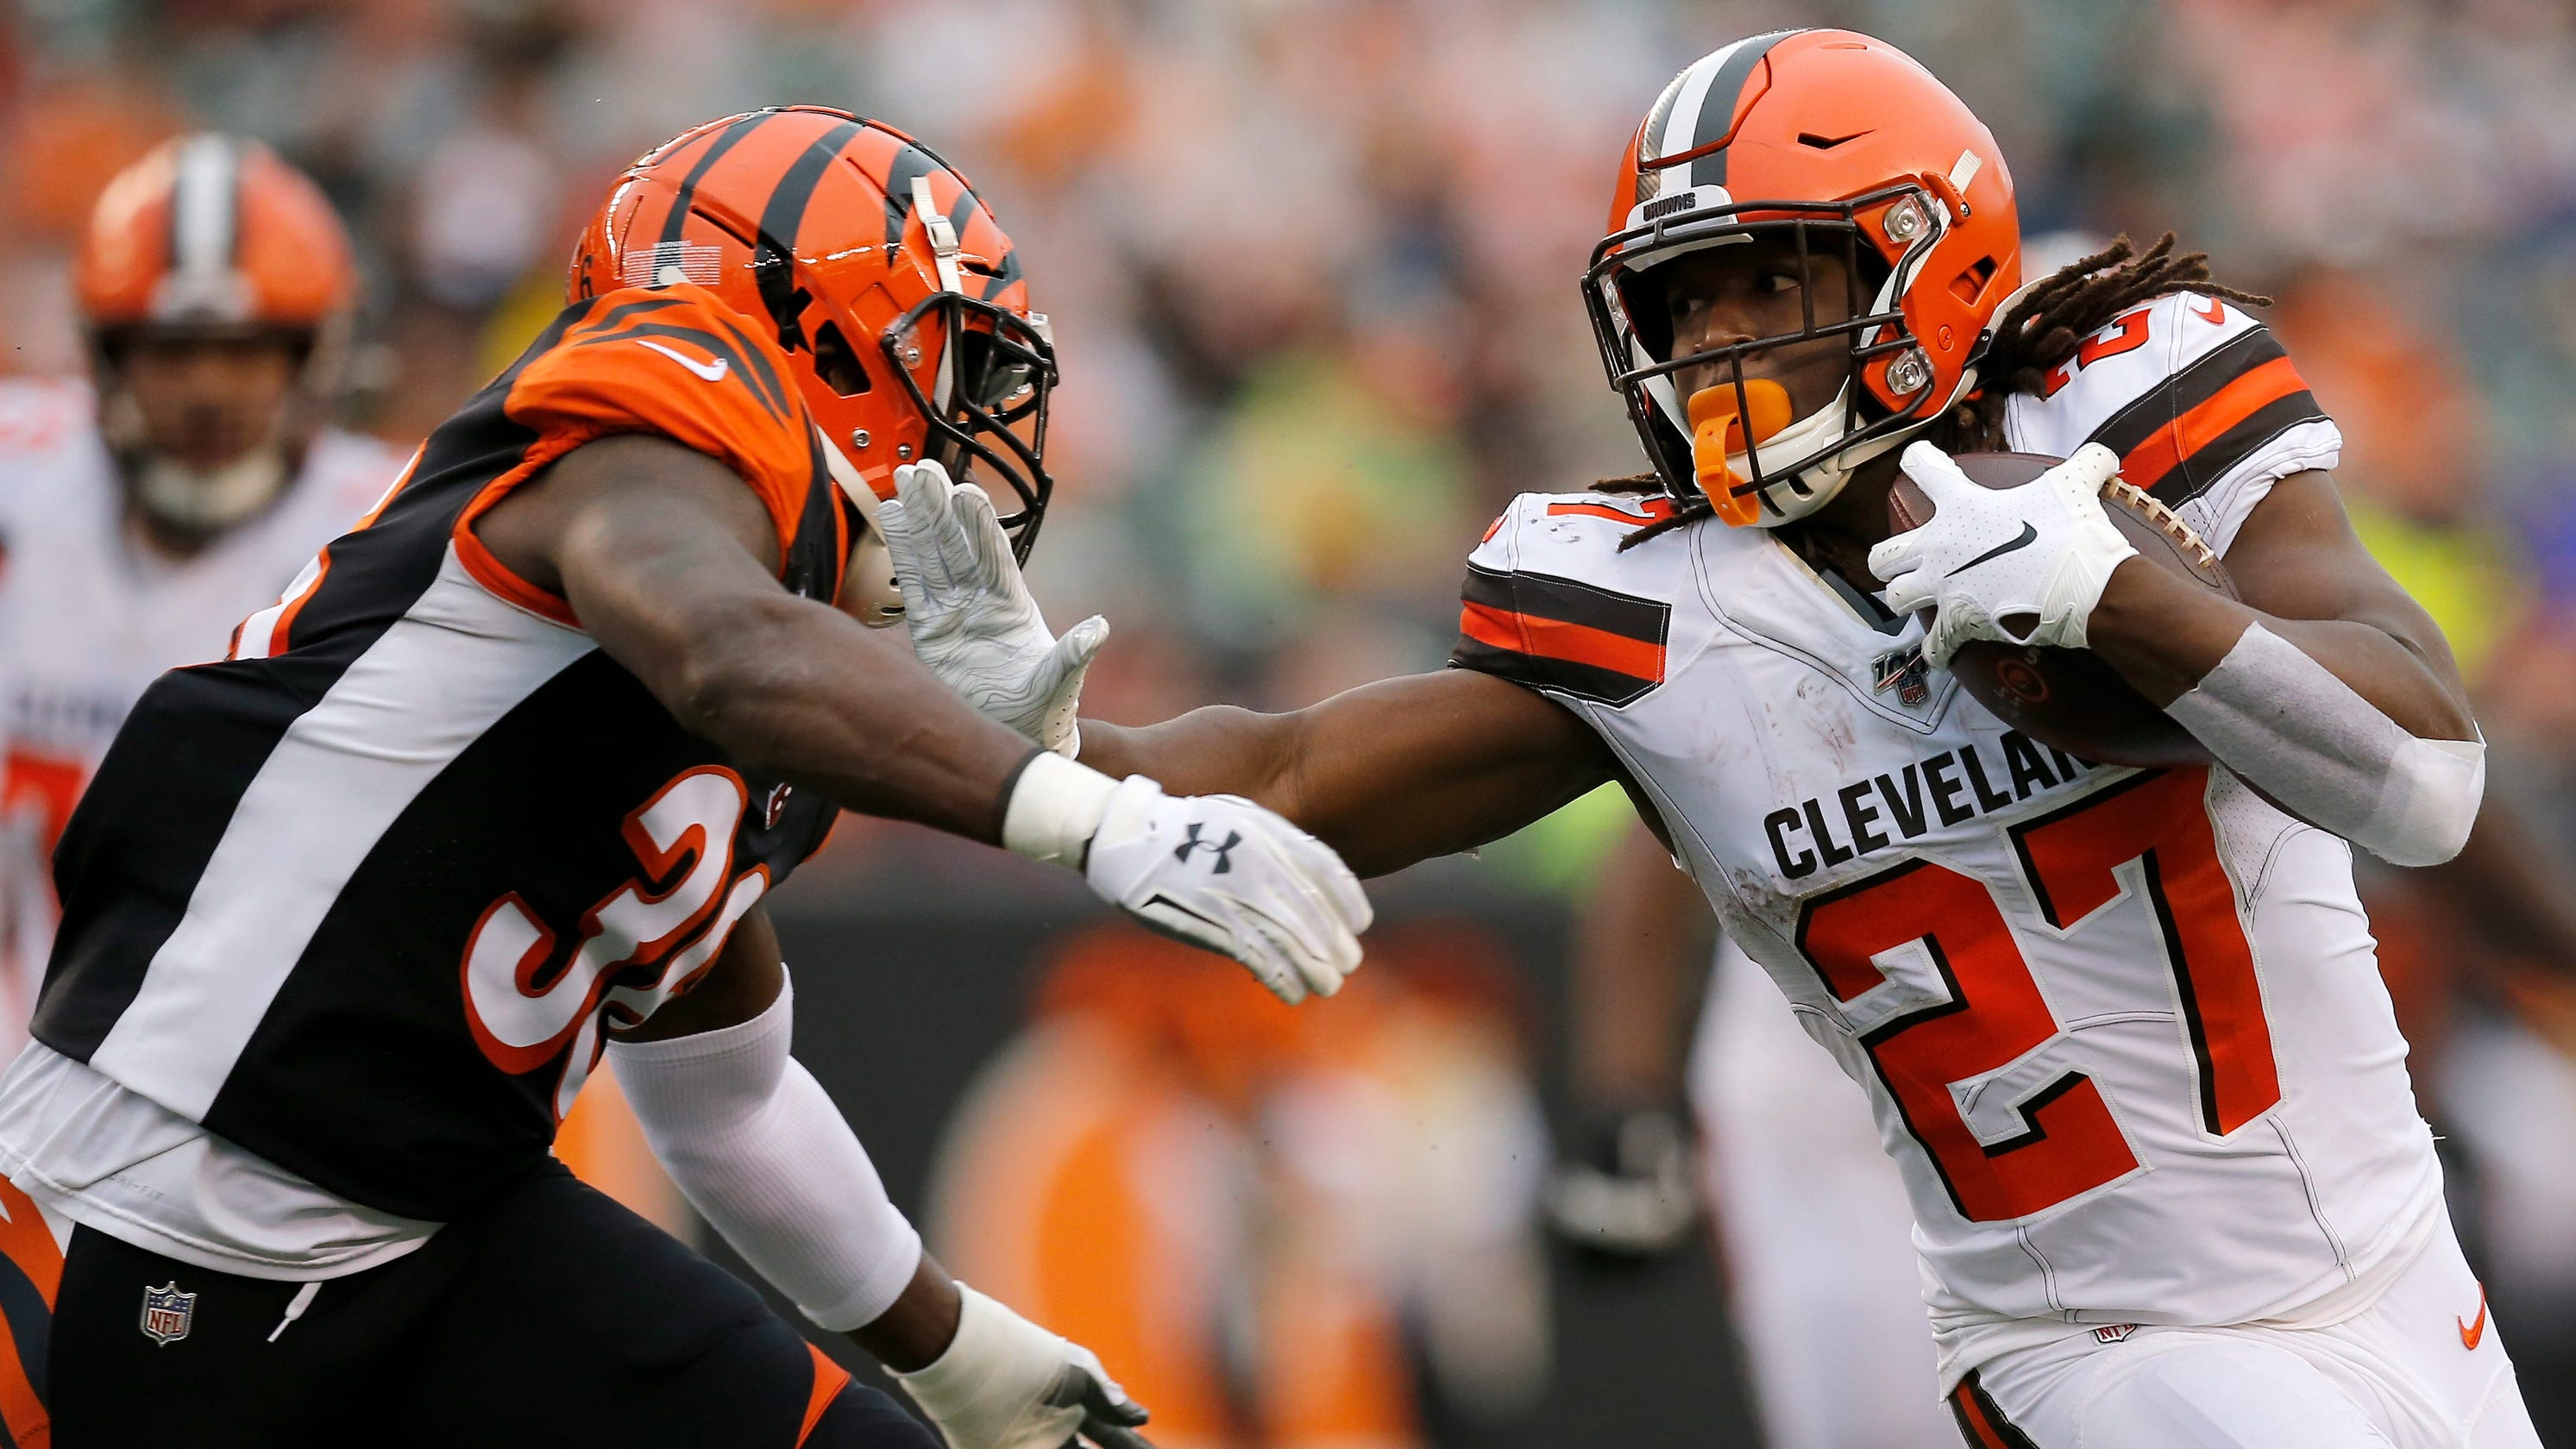 Cleveland Browns RB staying put